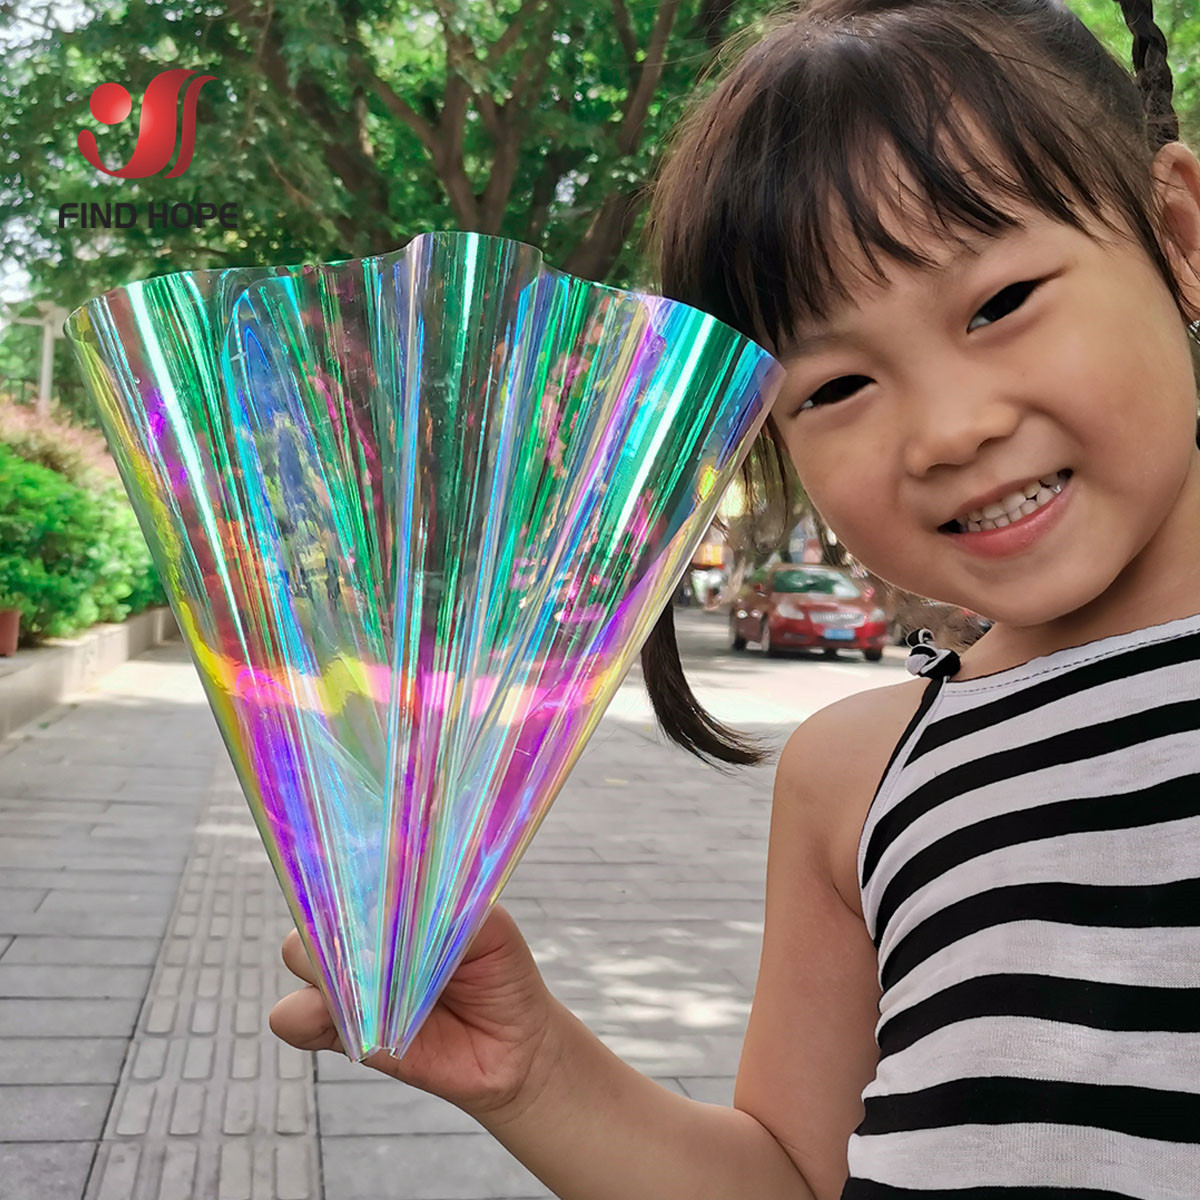 Laser Iridescent Holographic Film Clear Transparent PVC Fabric Leather   Rainbow Film Shiny Vinyl Material DIY Bow Craft Bag